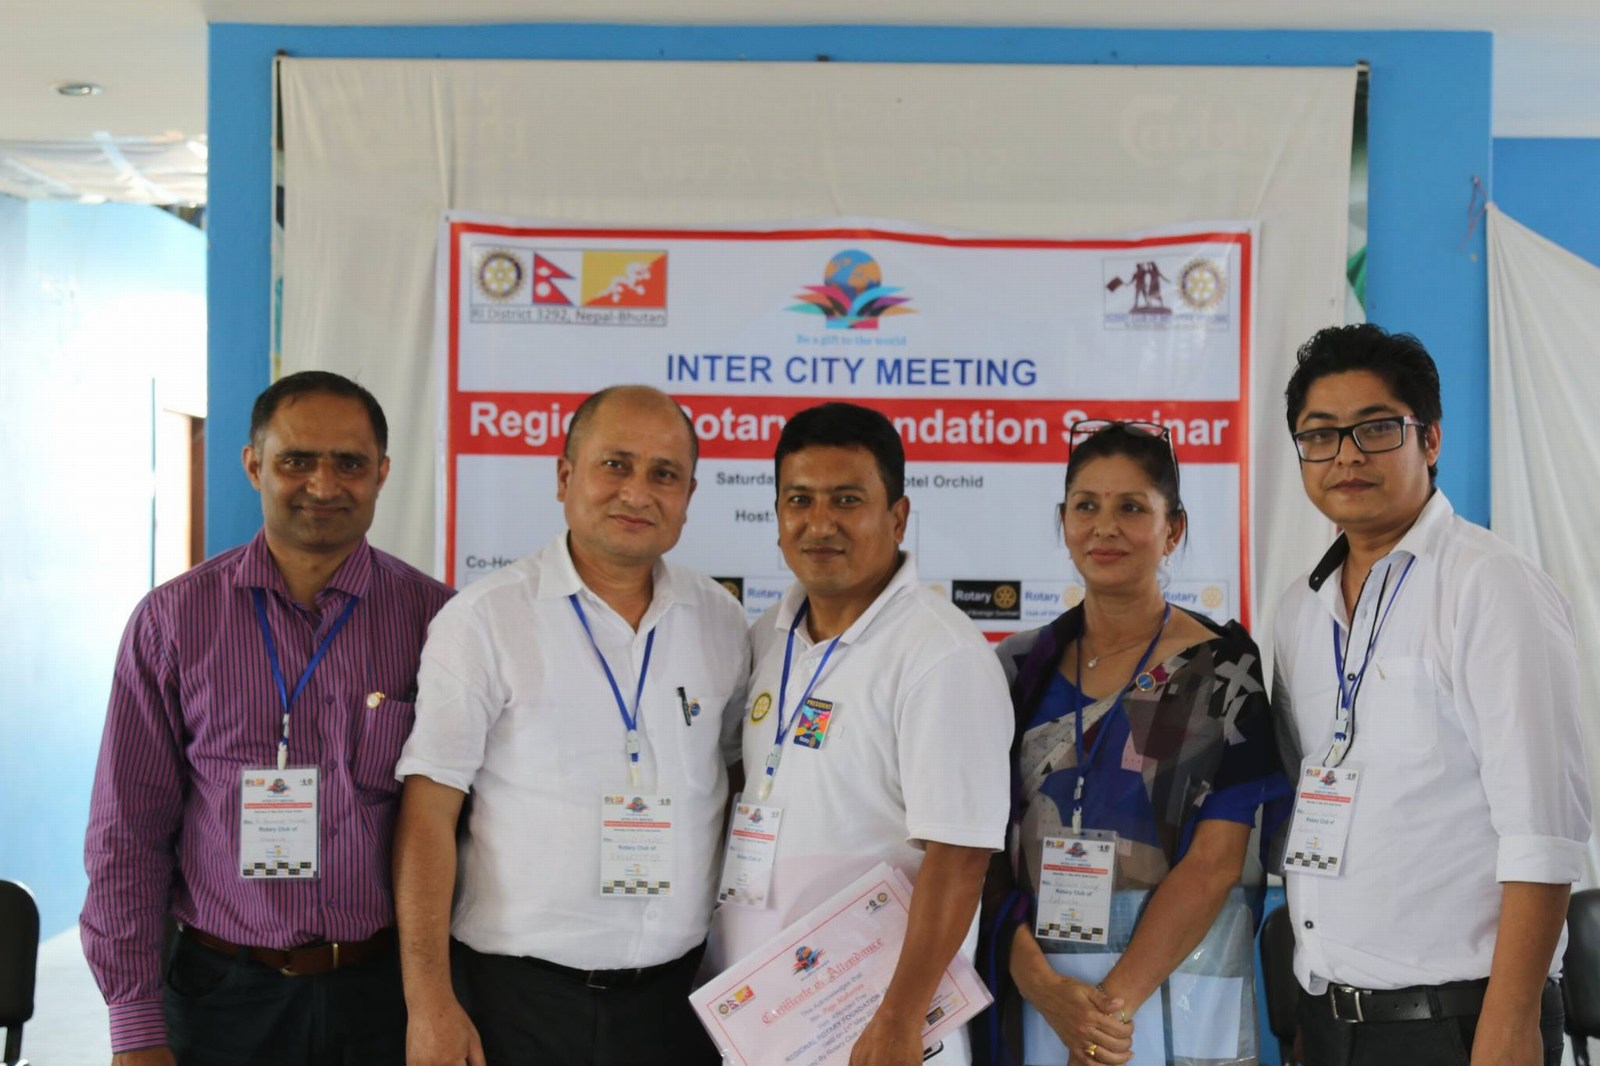 Regional-Rotary-Foundation-Seminar-Intercity-Meeting-Rotary-Club-of-Kakarvitta-23